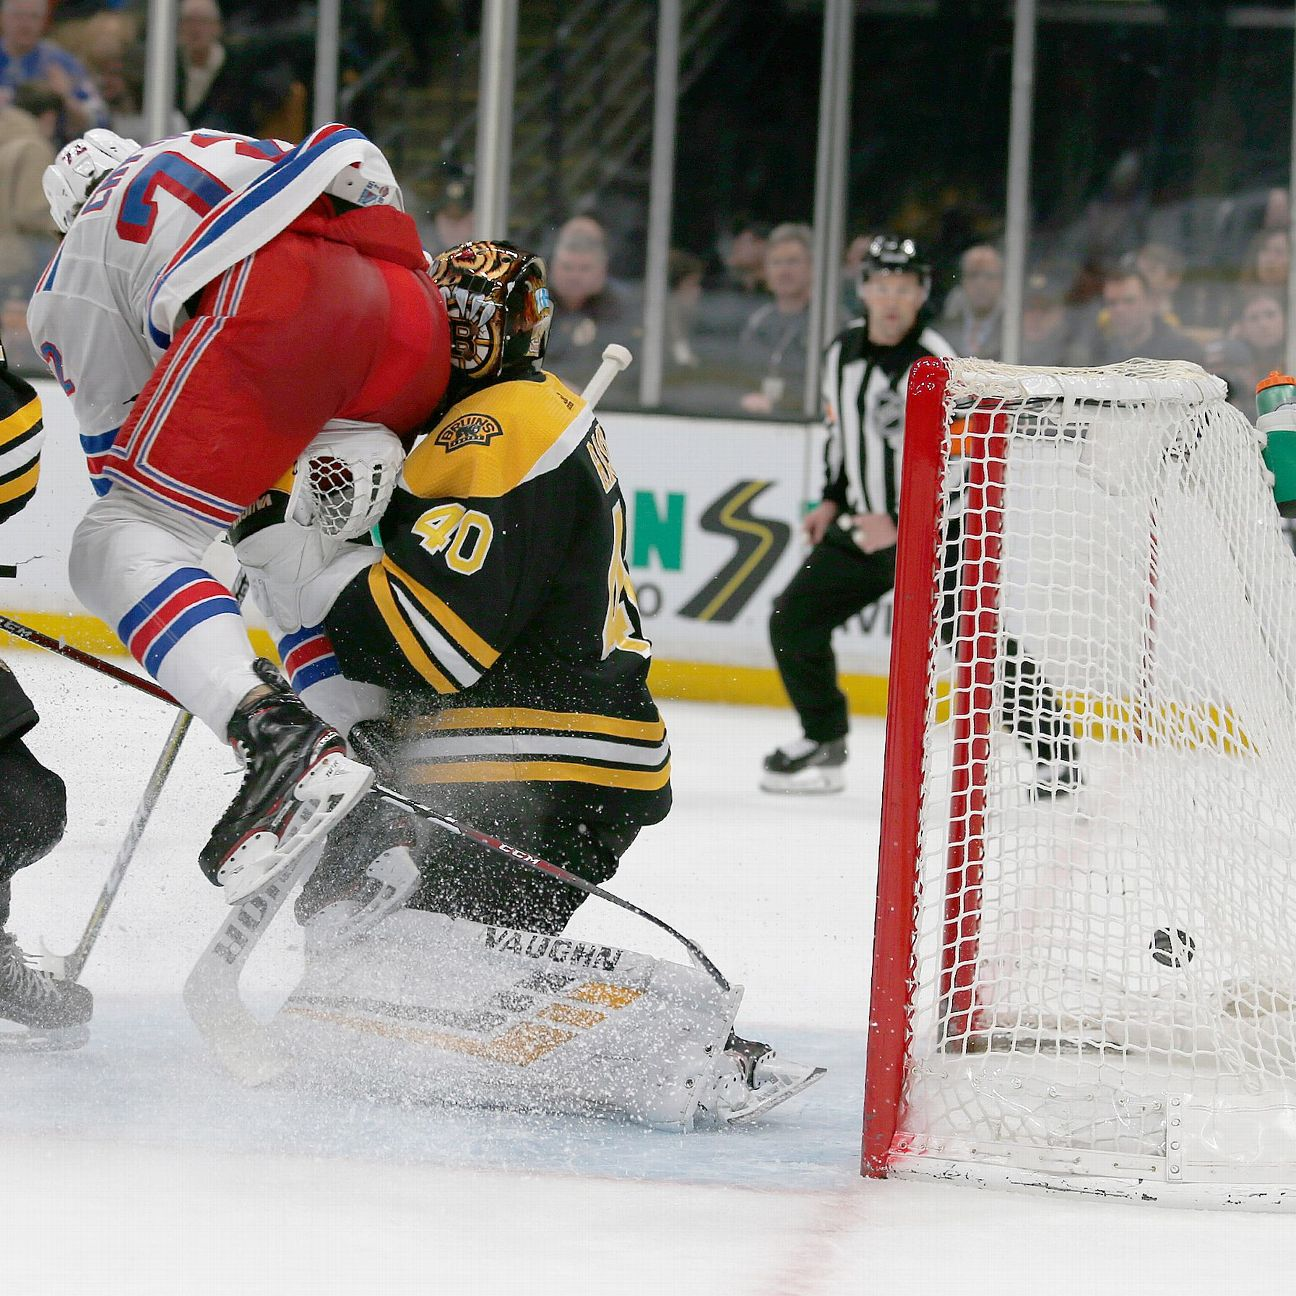 Bruins goalie Tuukka Rask suffered a concussion on a hard collision with Rangers forward Filip Chytil and was helped off the ice late in the opening period.